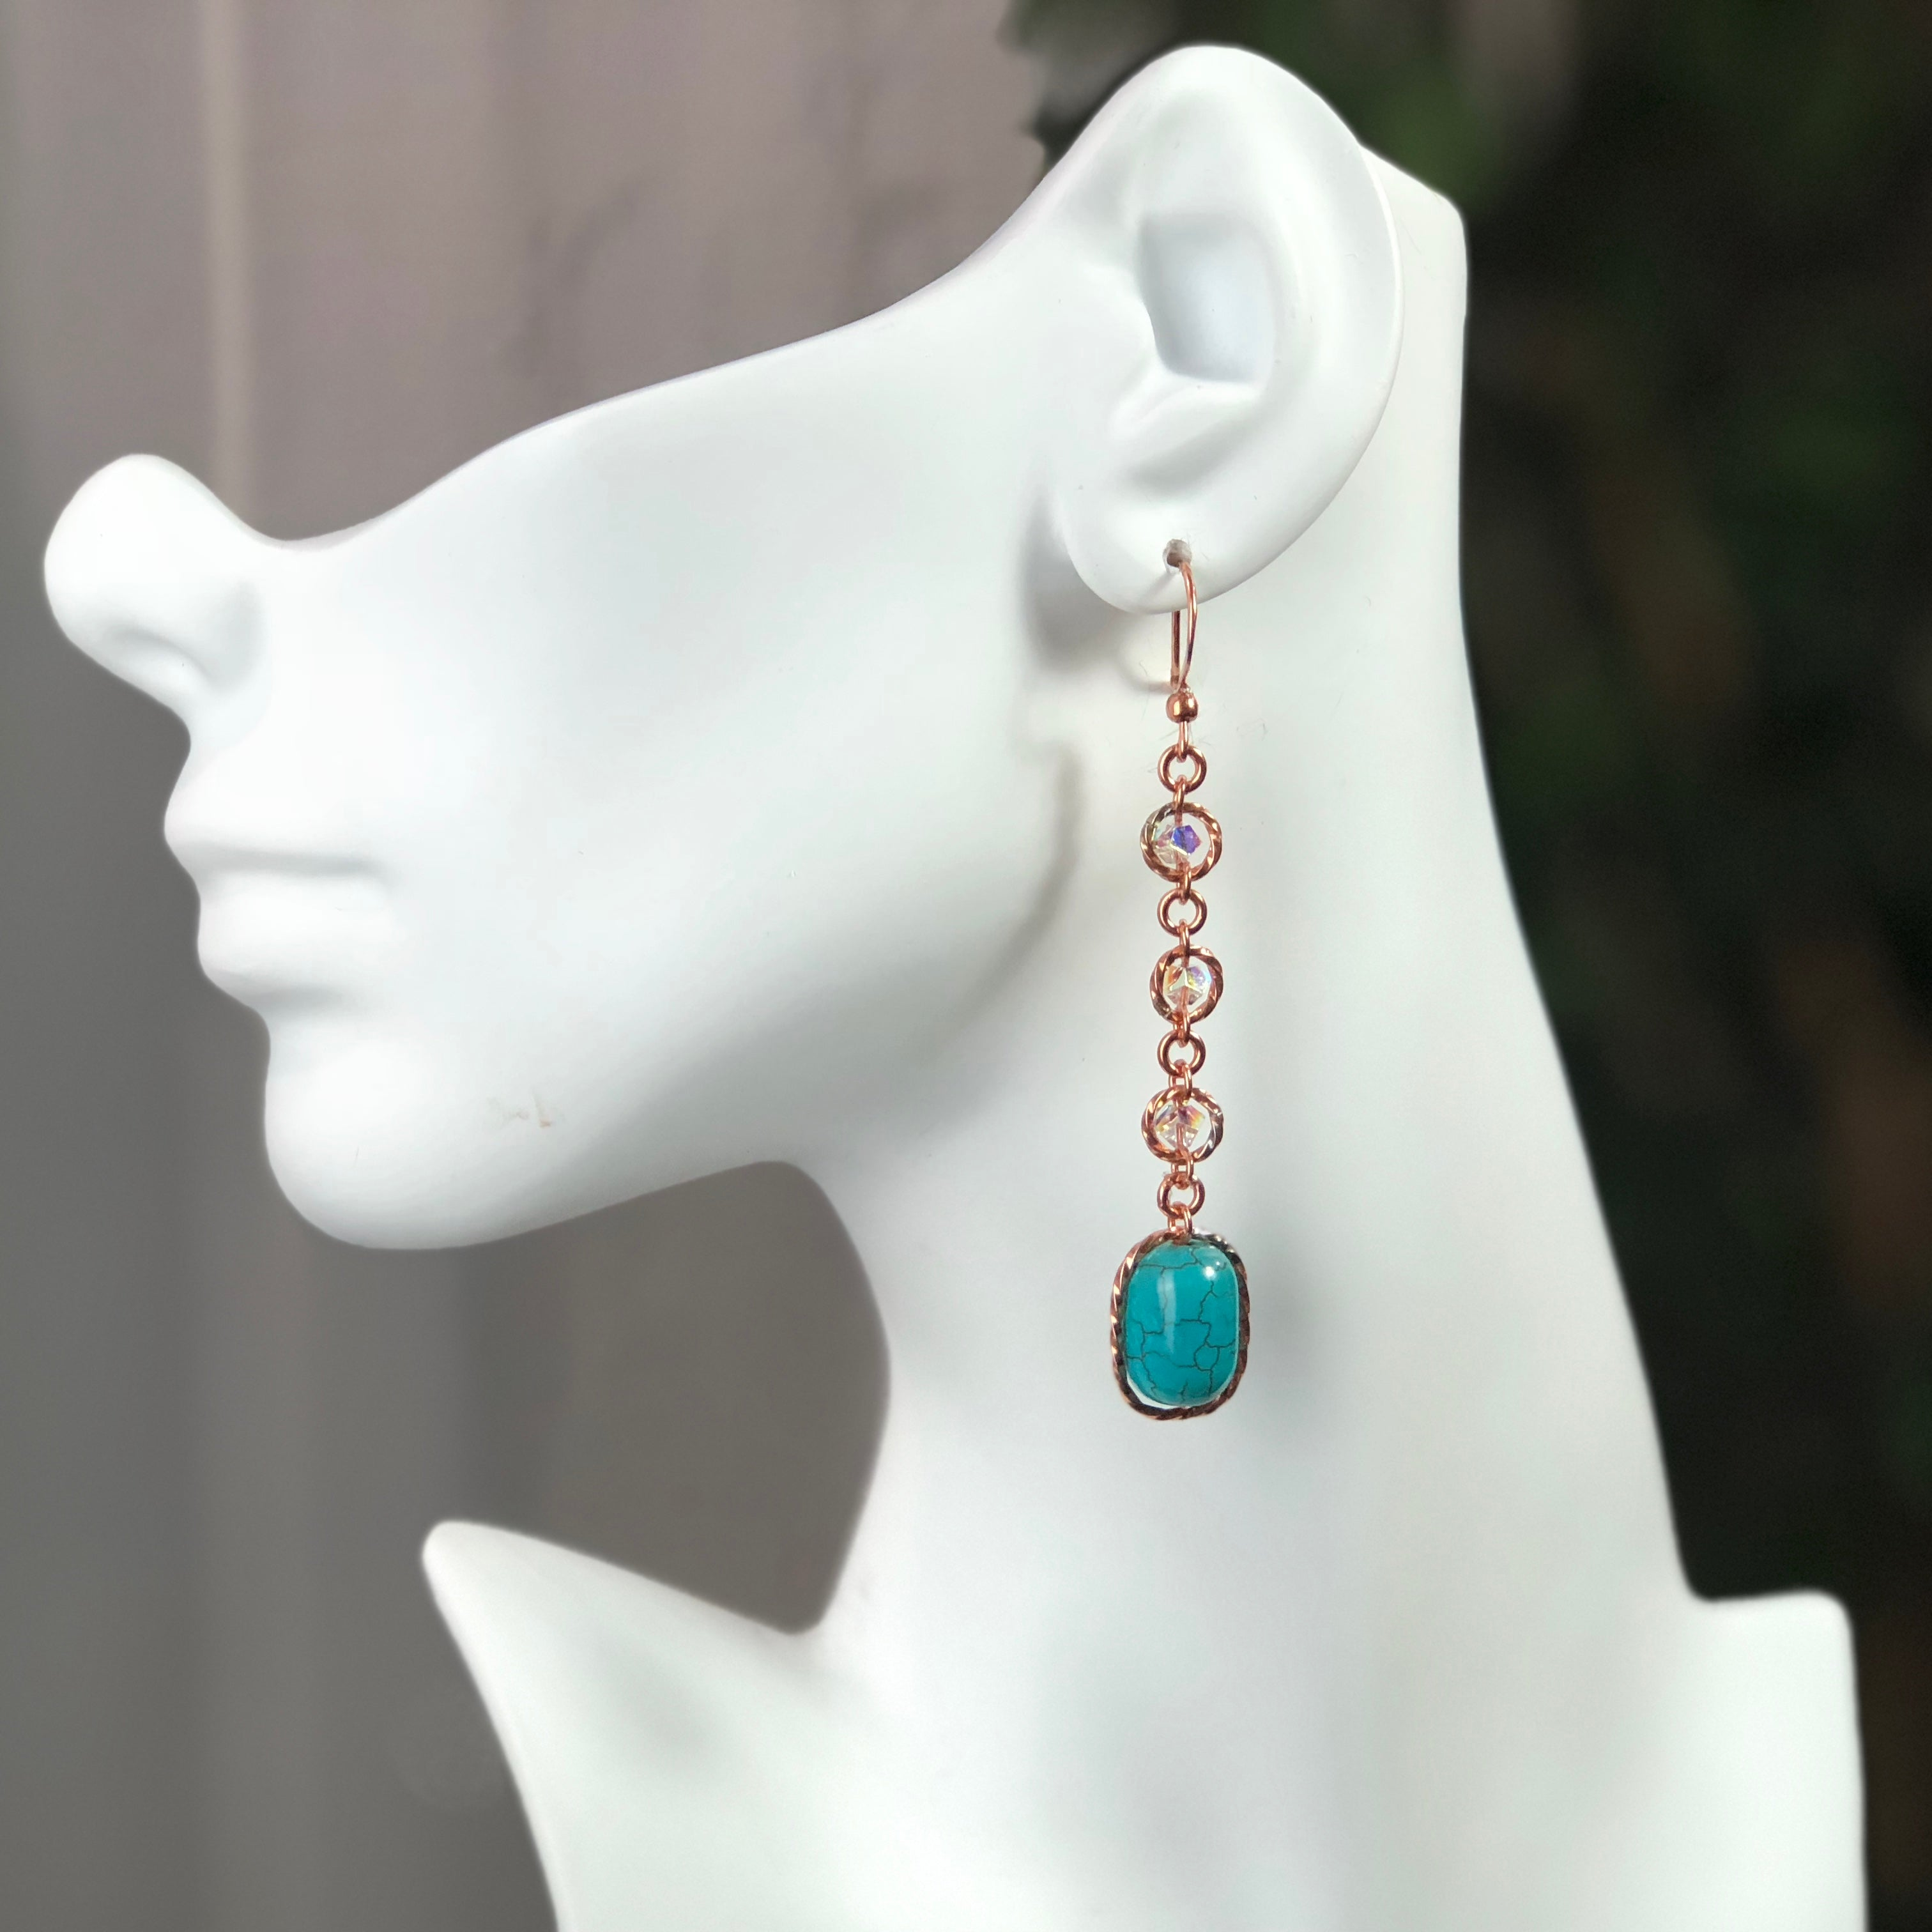 Tranquil Earrings - Copper/Turquoise